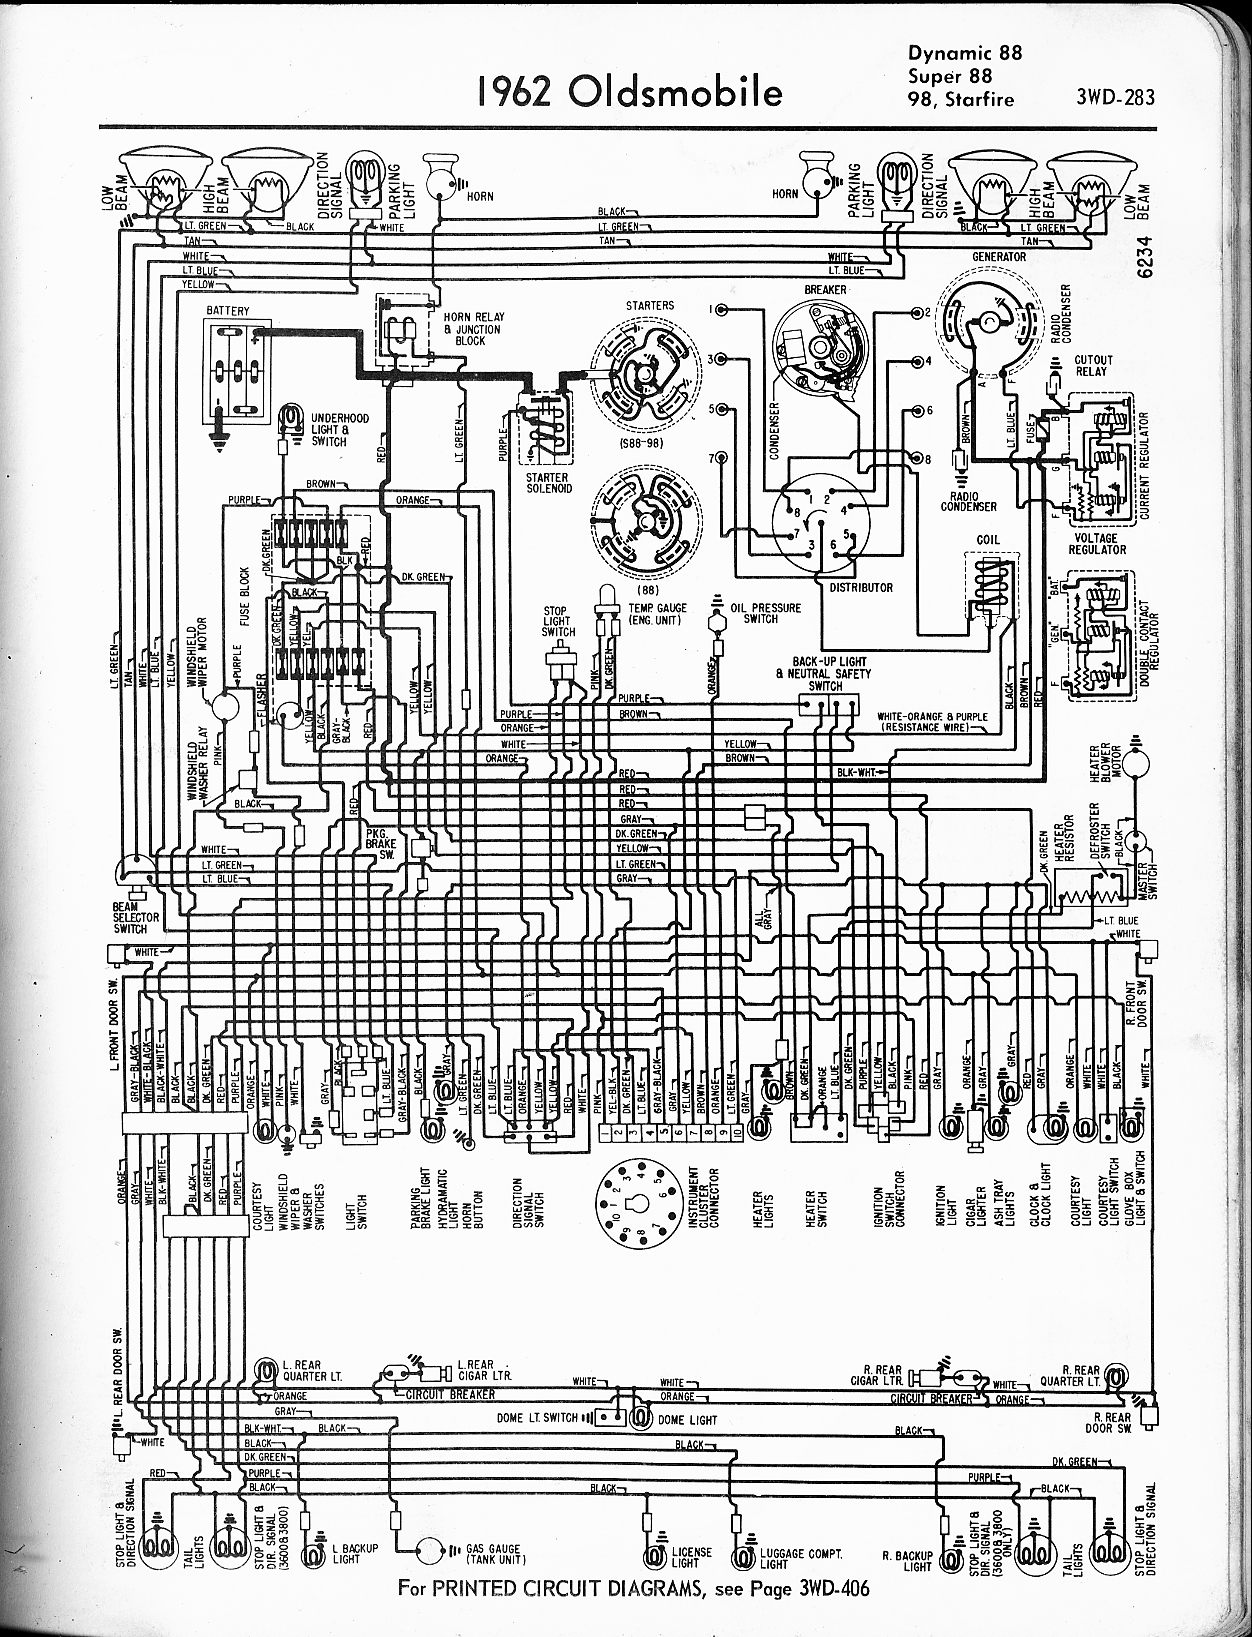 Olds 88 Ignition Coil Wiring Diagram Opinions About Buick Oldsmobile Diagrams The Old Car Manual Project Rh Oldcarmanualproject Com Harley